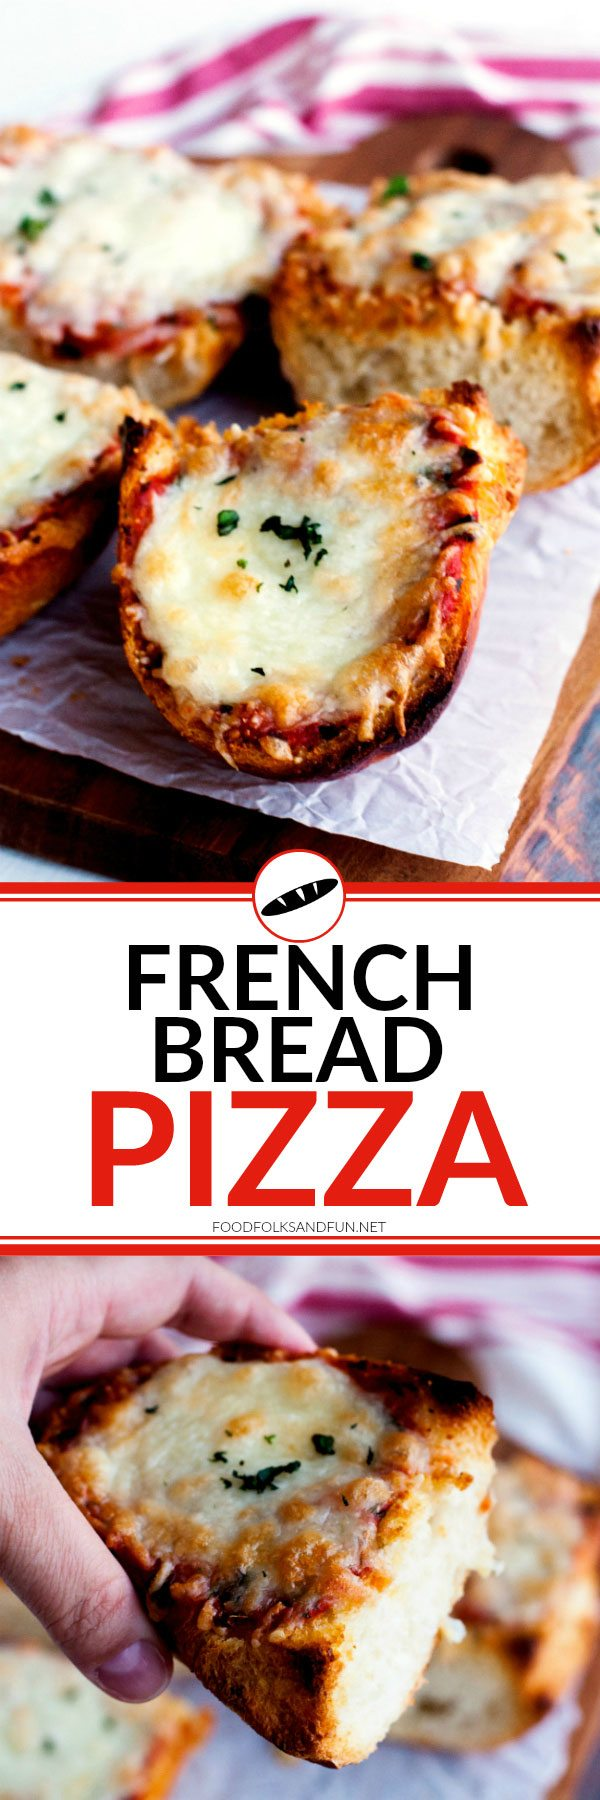 Serve this French Bread Pizza for pizza night, weeknights, or weekends. It's delicious and so easy to make; get it on your table in less than 30 minutes! via @foodfolksandfun